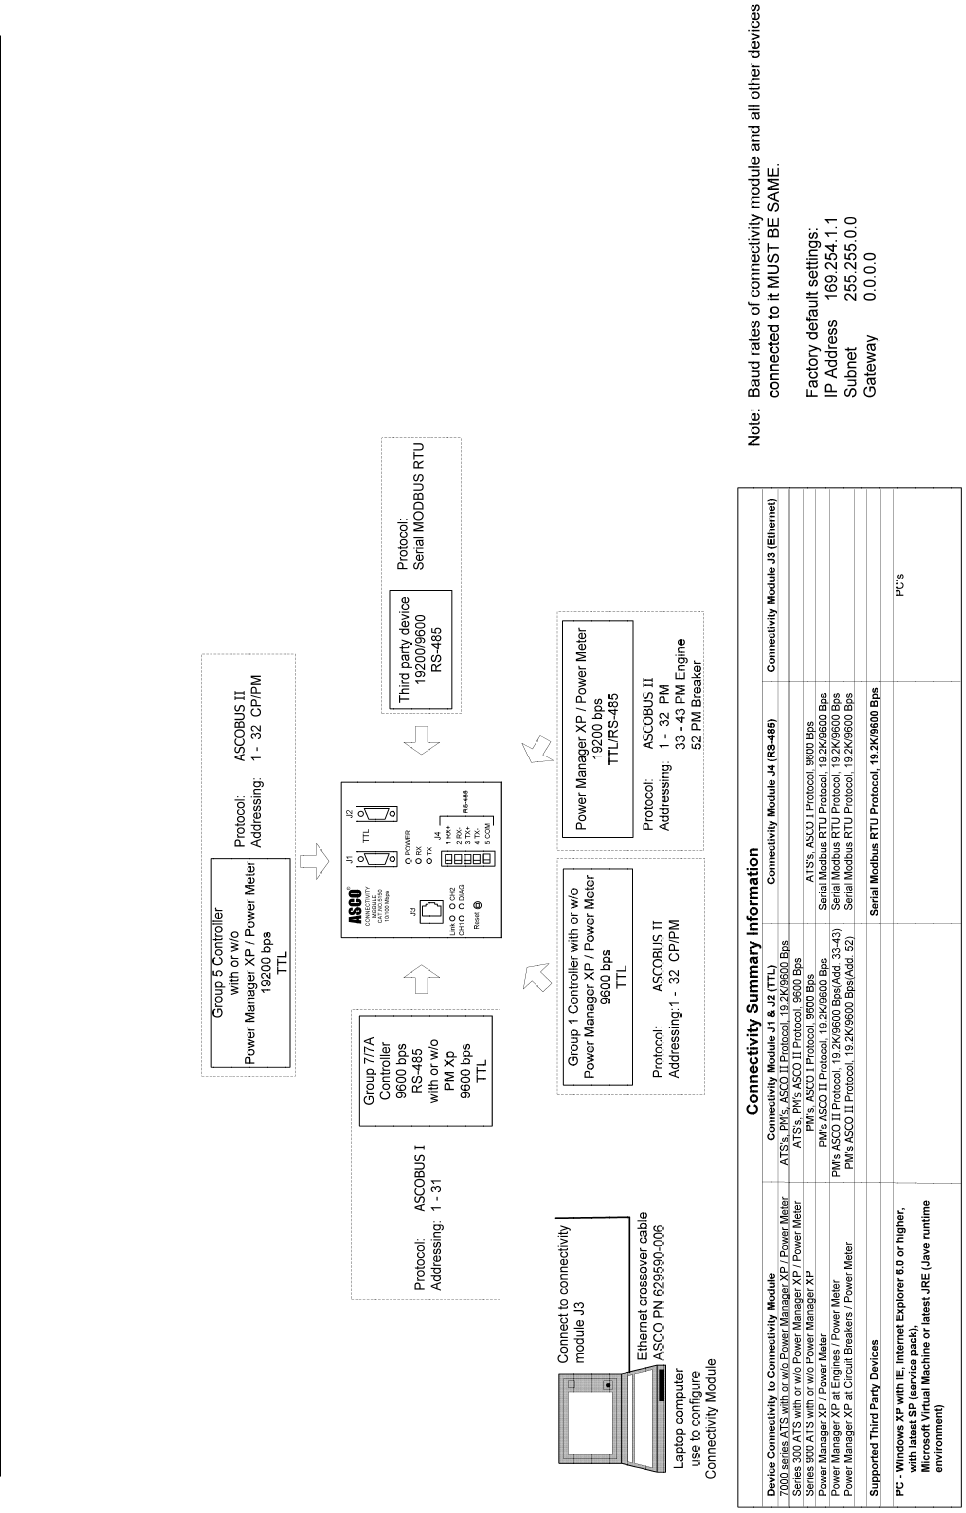 Emerson 5150 Users Manual Installation For Asco Catalog Connectivity 185 Transfer Switch Wiring Diagram V Diagrams Module